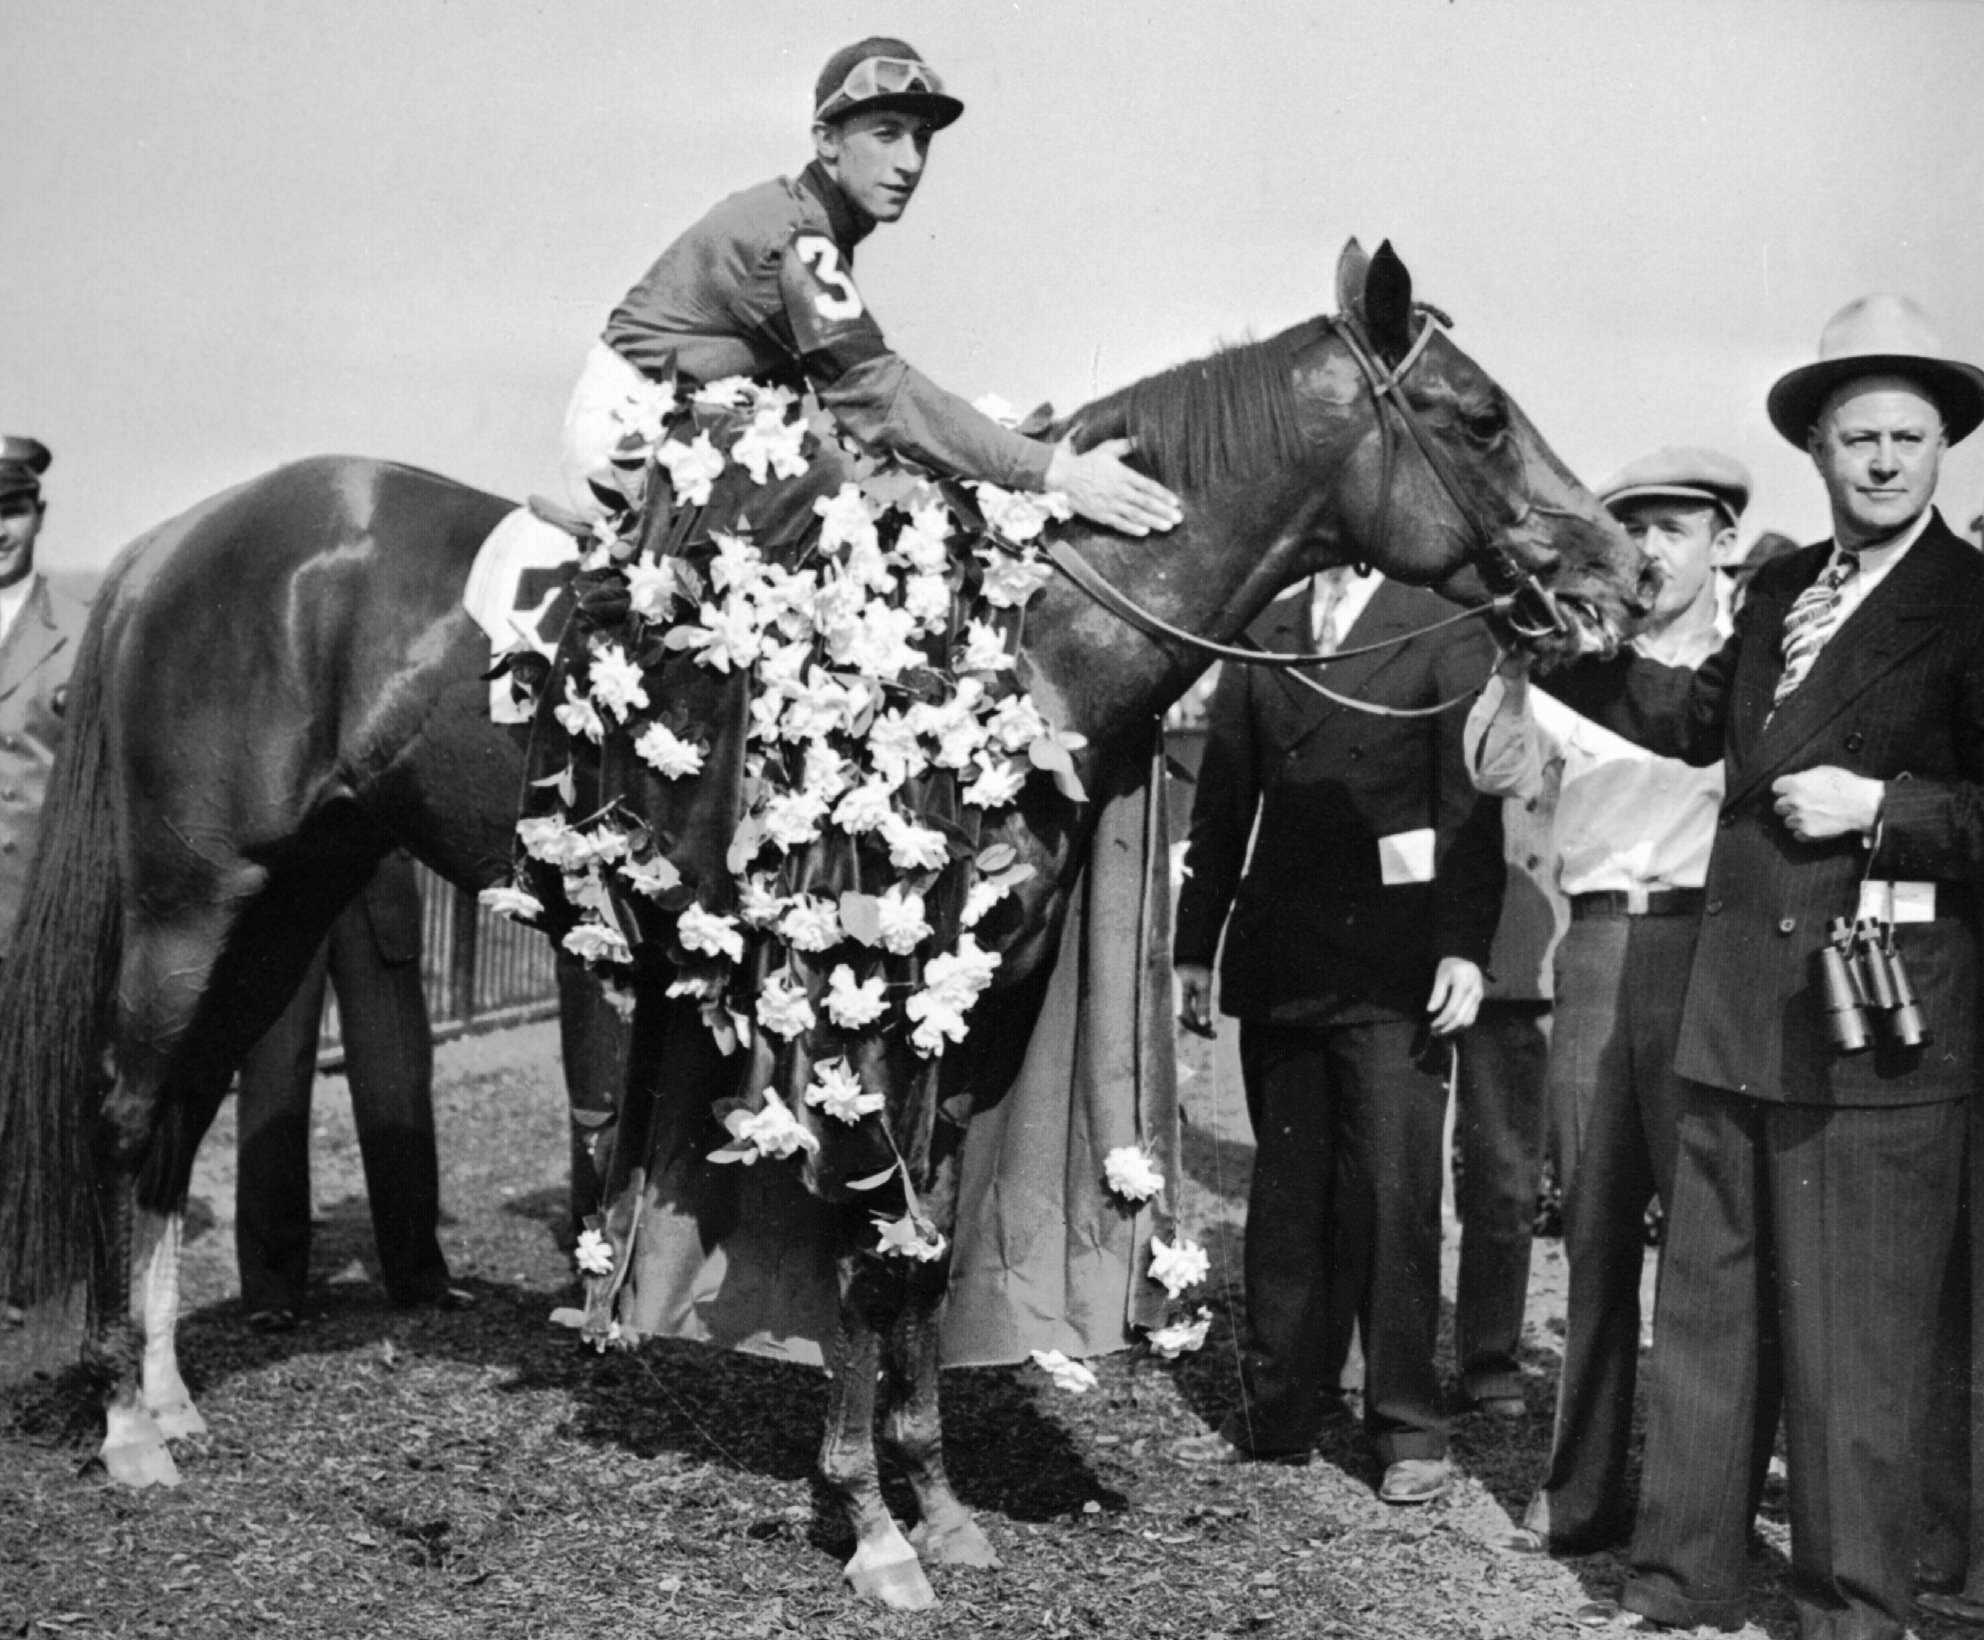 Whirlaway is draped with the floral tribute in the winner's circle at Belmont Park, N.Y., on June 7, 1941 after winning the Belmont Stakes race of the Triple Crown with jockey Eddie Arcaro. Trainer Ben Jones holds the bridle.